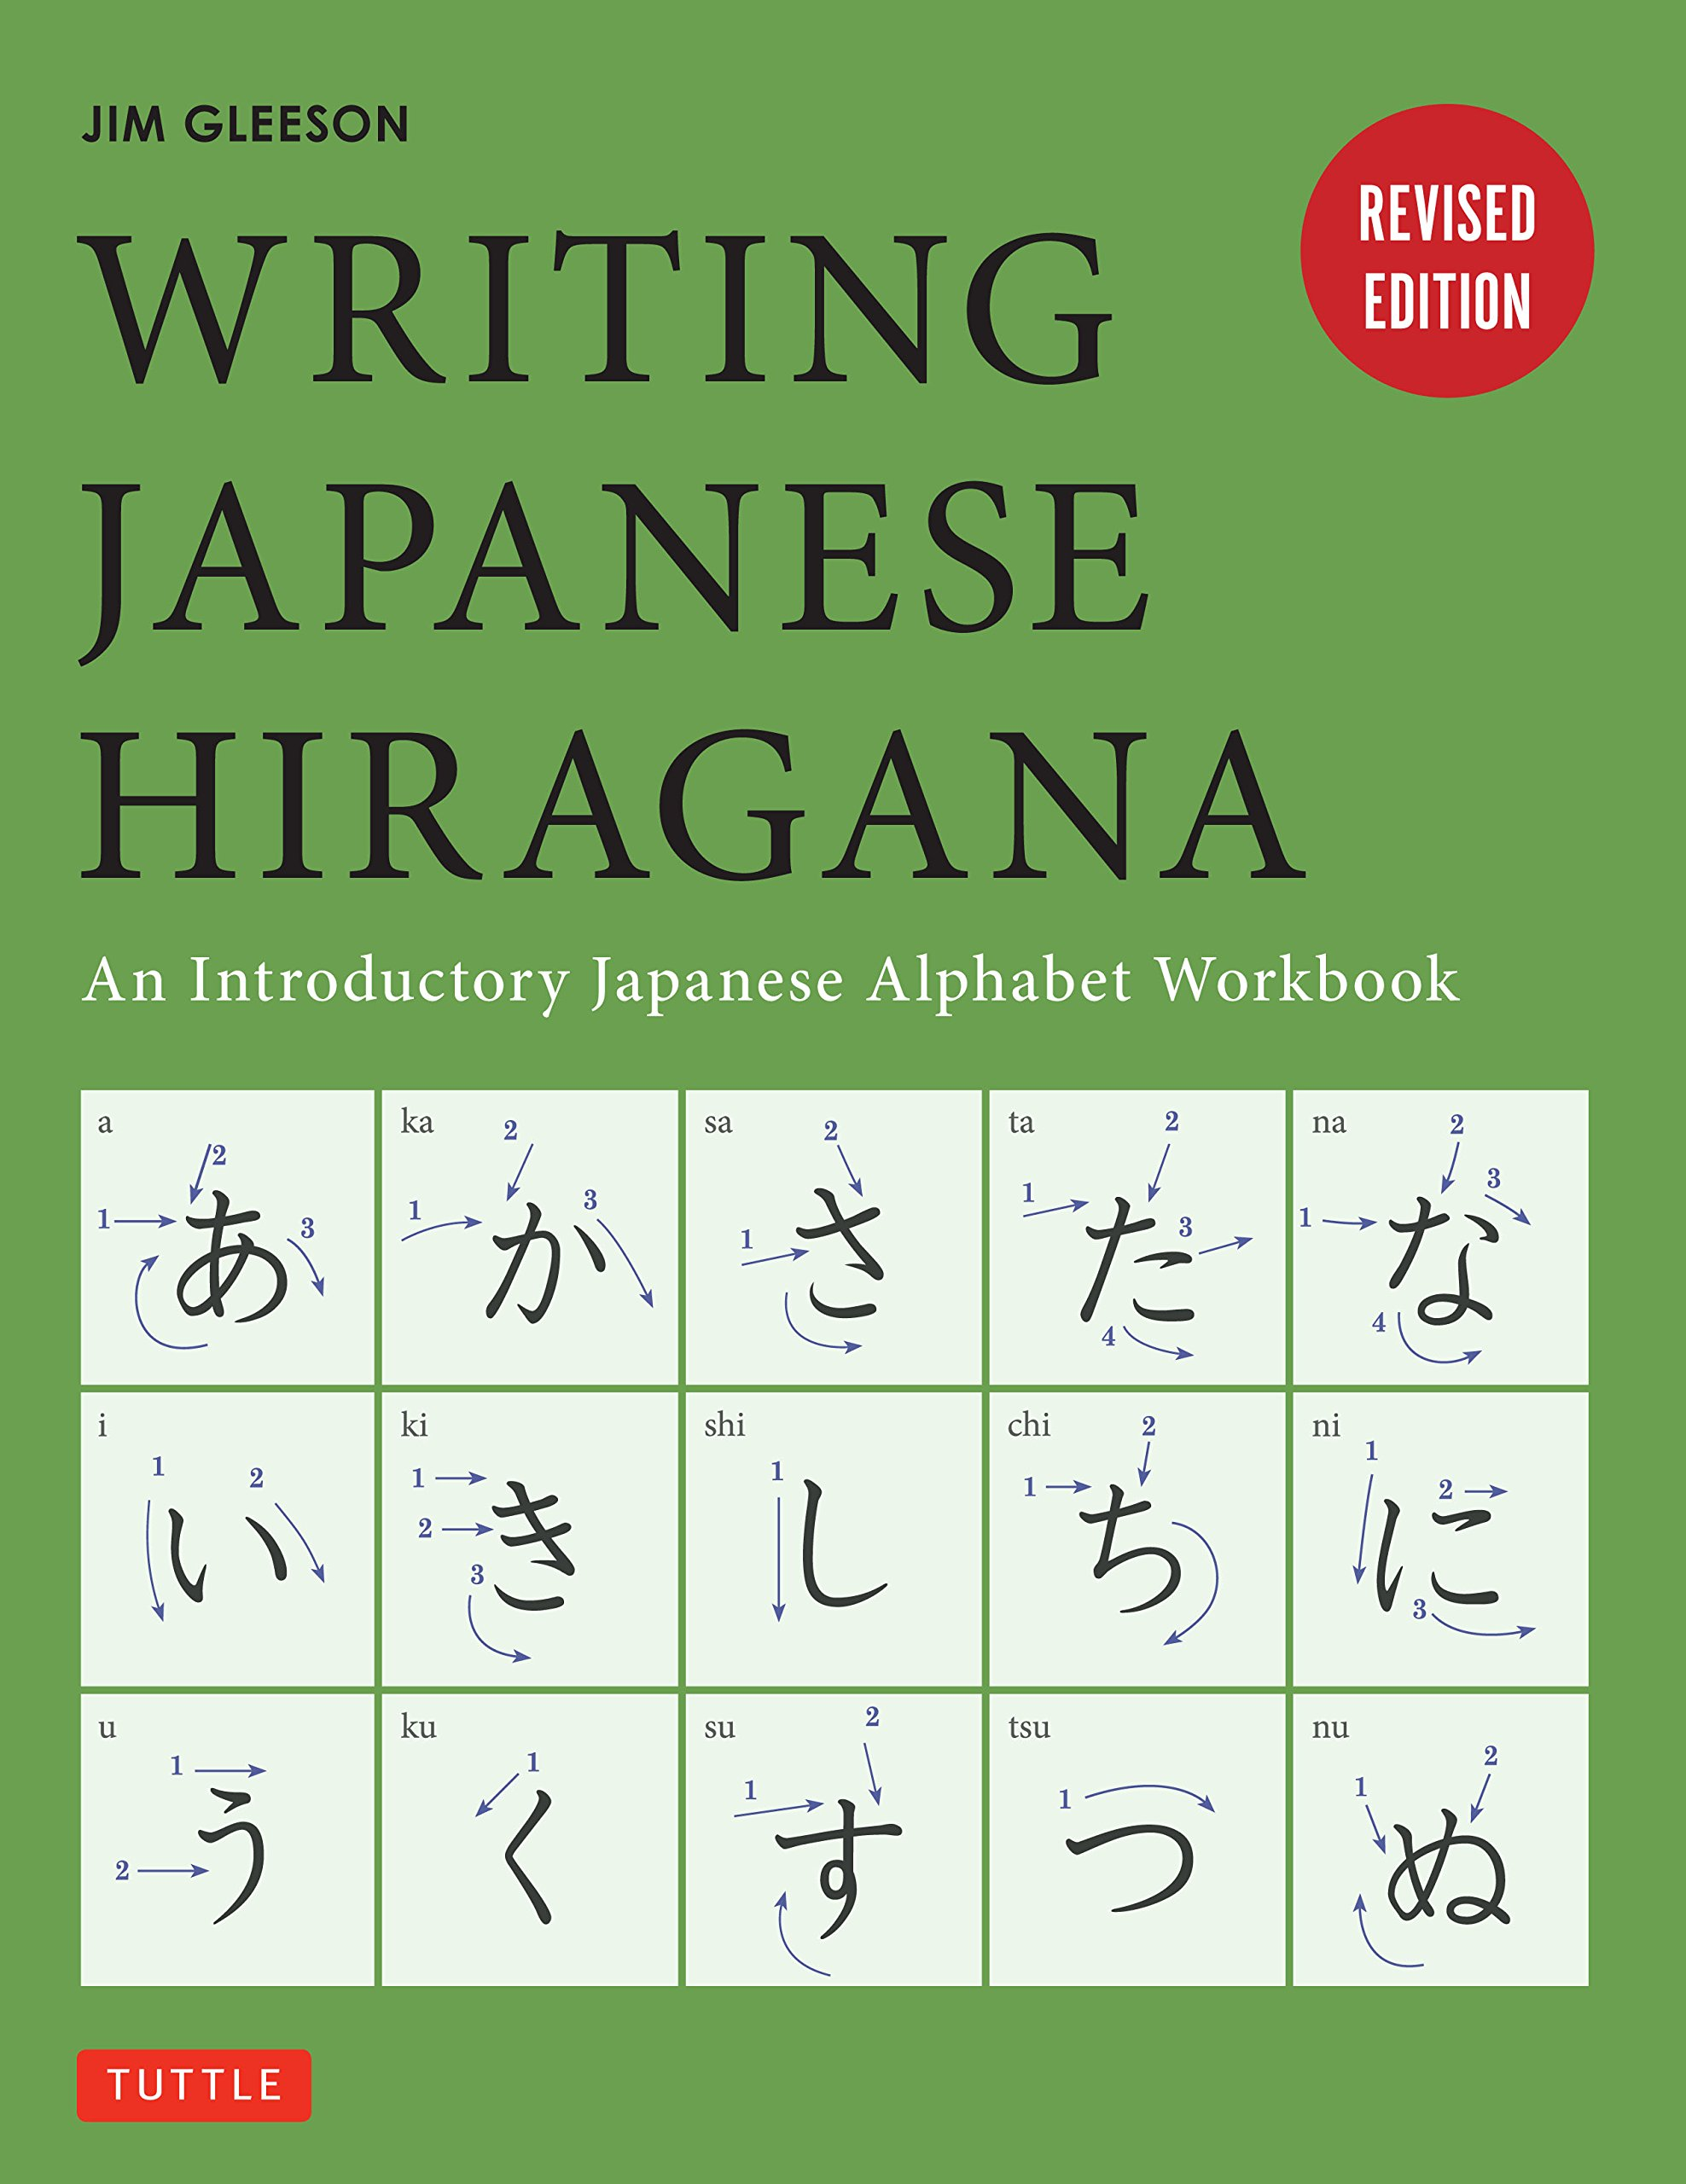 Amazon Com Writing Japanese Hiragana An Introductory Japanese Language Workbook Learn And Practice The Japanese Alphabet 9784805313497 Gleeson Jim Books